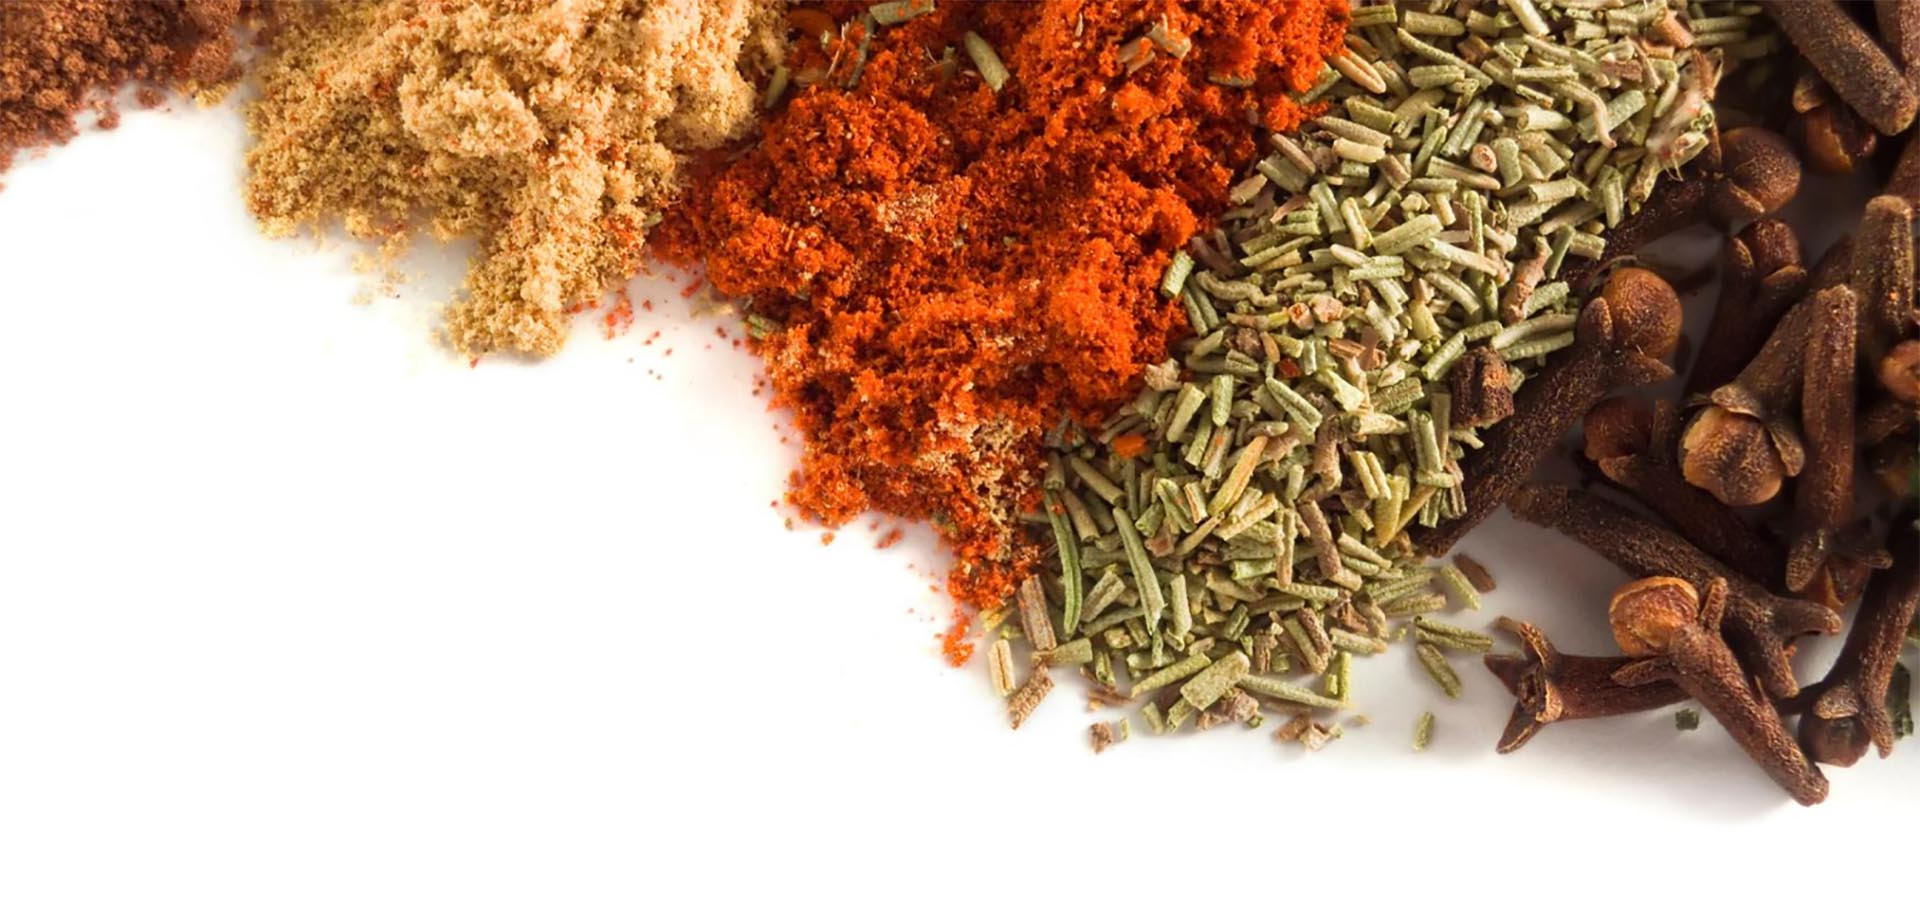 """YOU""""LL ENJOY COOKING A LOT MORE ONCE YOUV'E MASTERED THE HERBS & SPICES BASICS"""